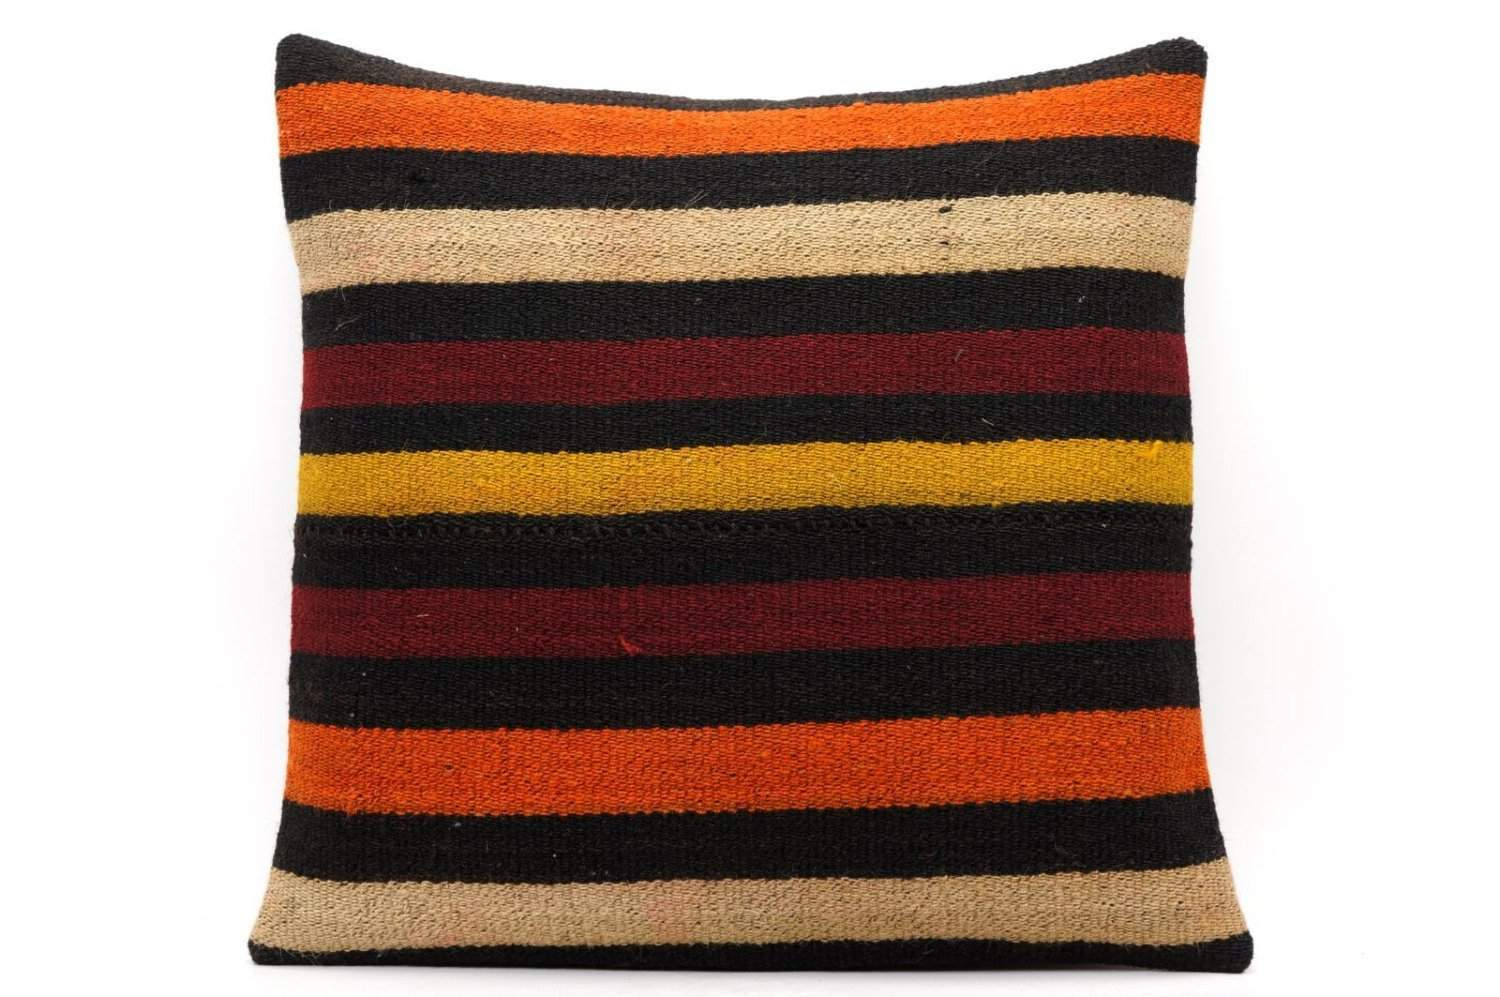 CLEARANCE 16x16 Vintage Hand Woven Kilim Pillow 553 ,black, beige, yellow,claret red, orange, striped - kilimpillowstore  - 1